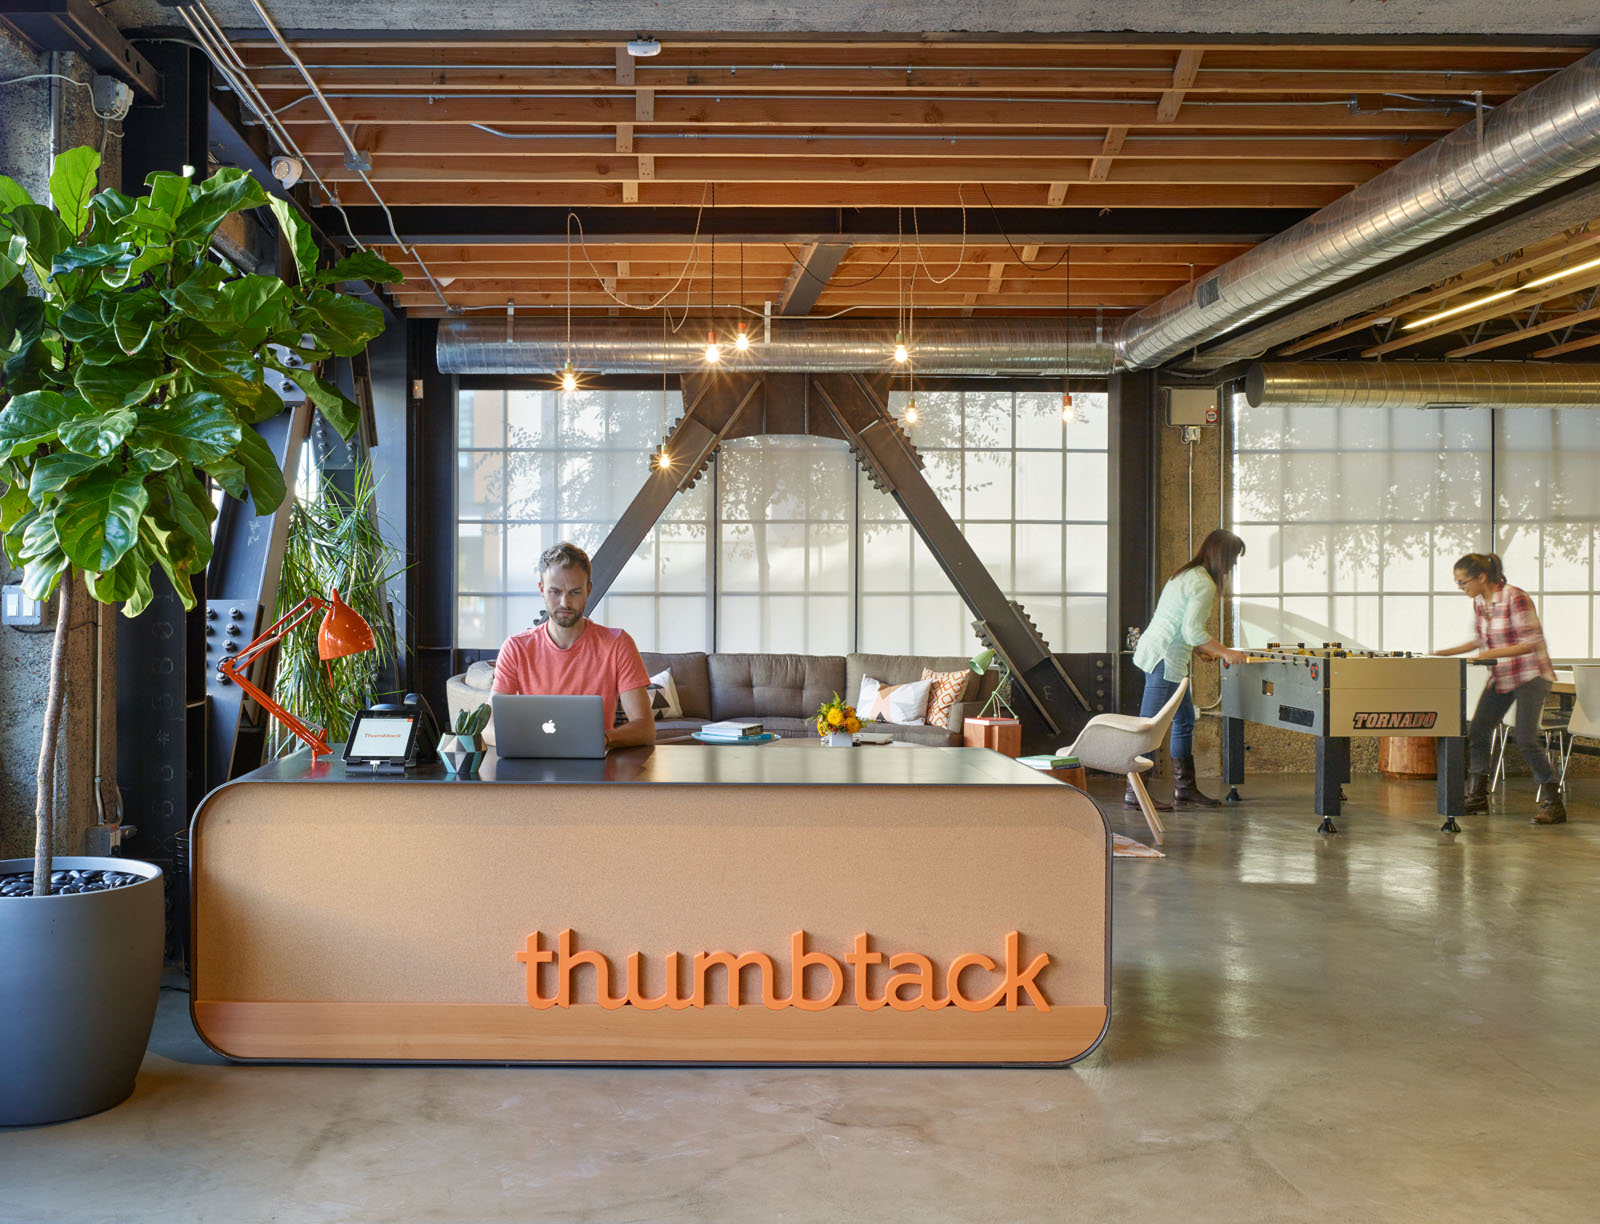 Thumbtack's headquarters in San Francisco.